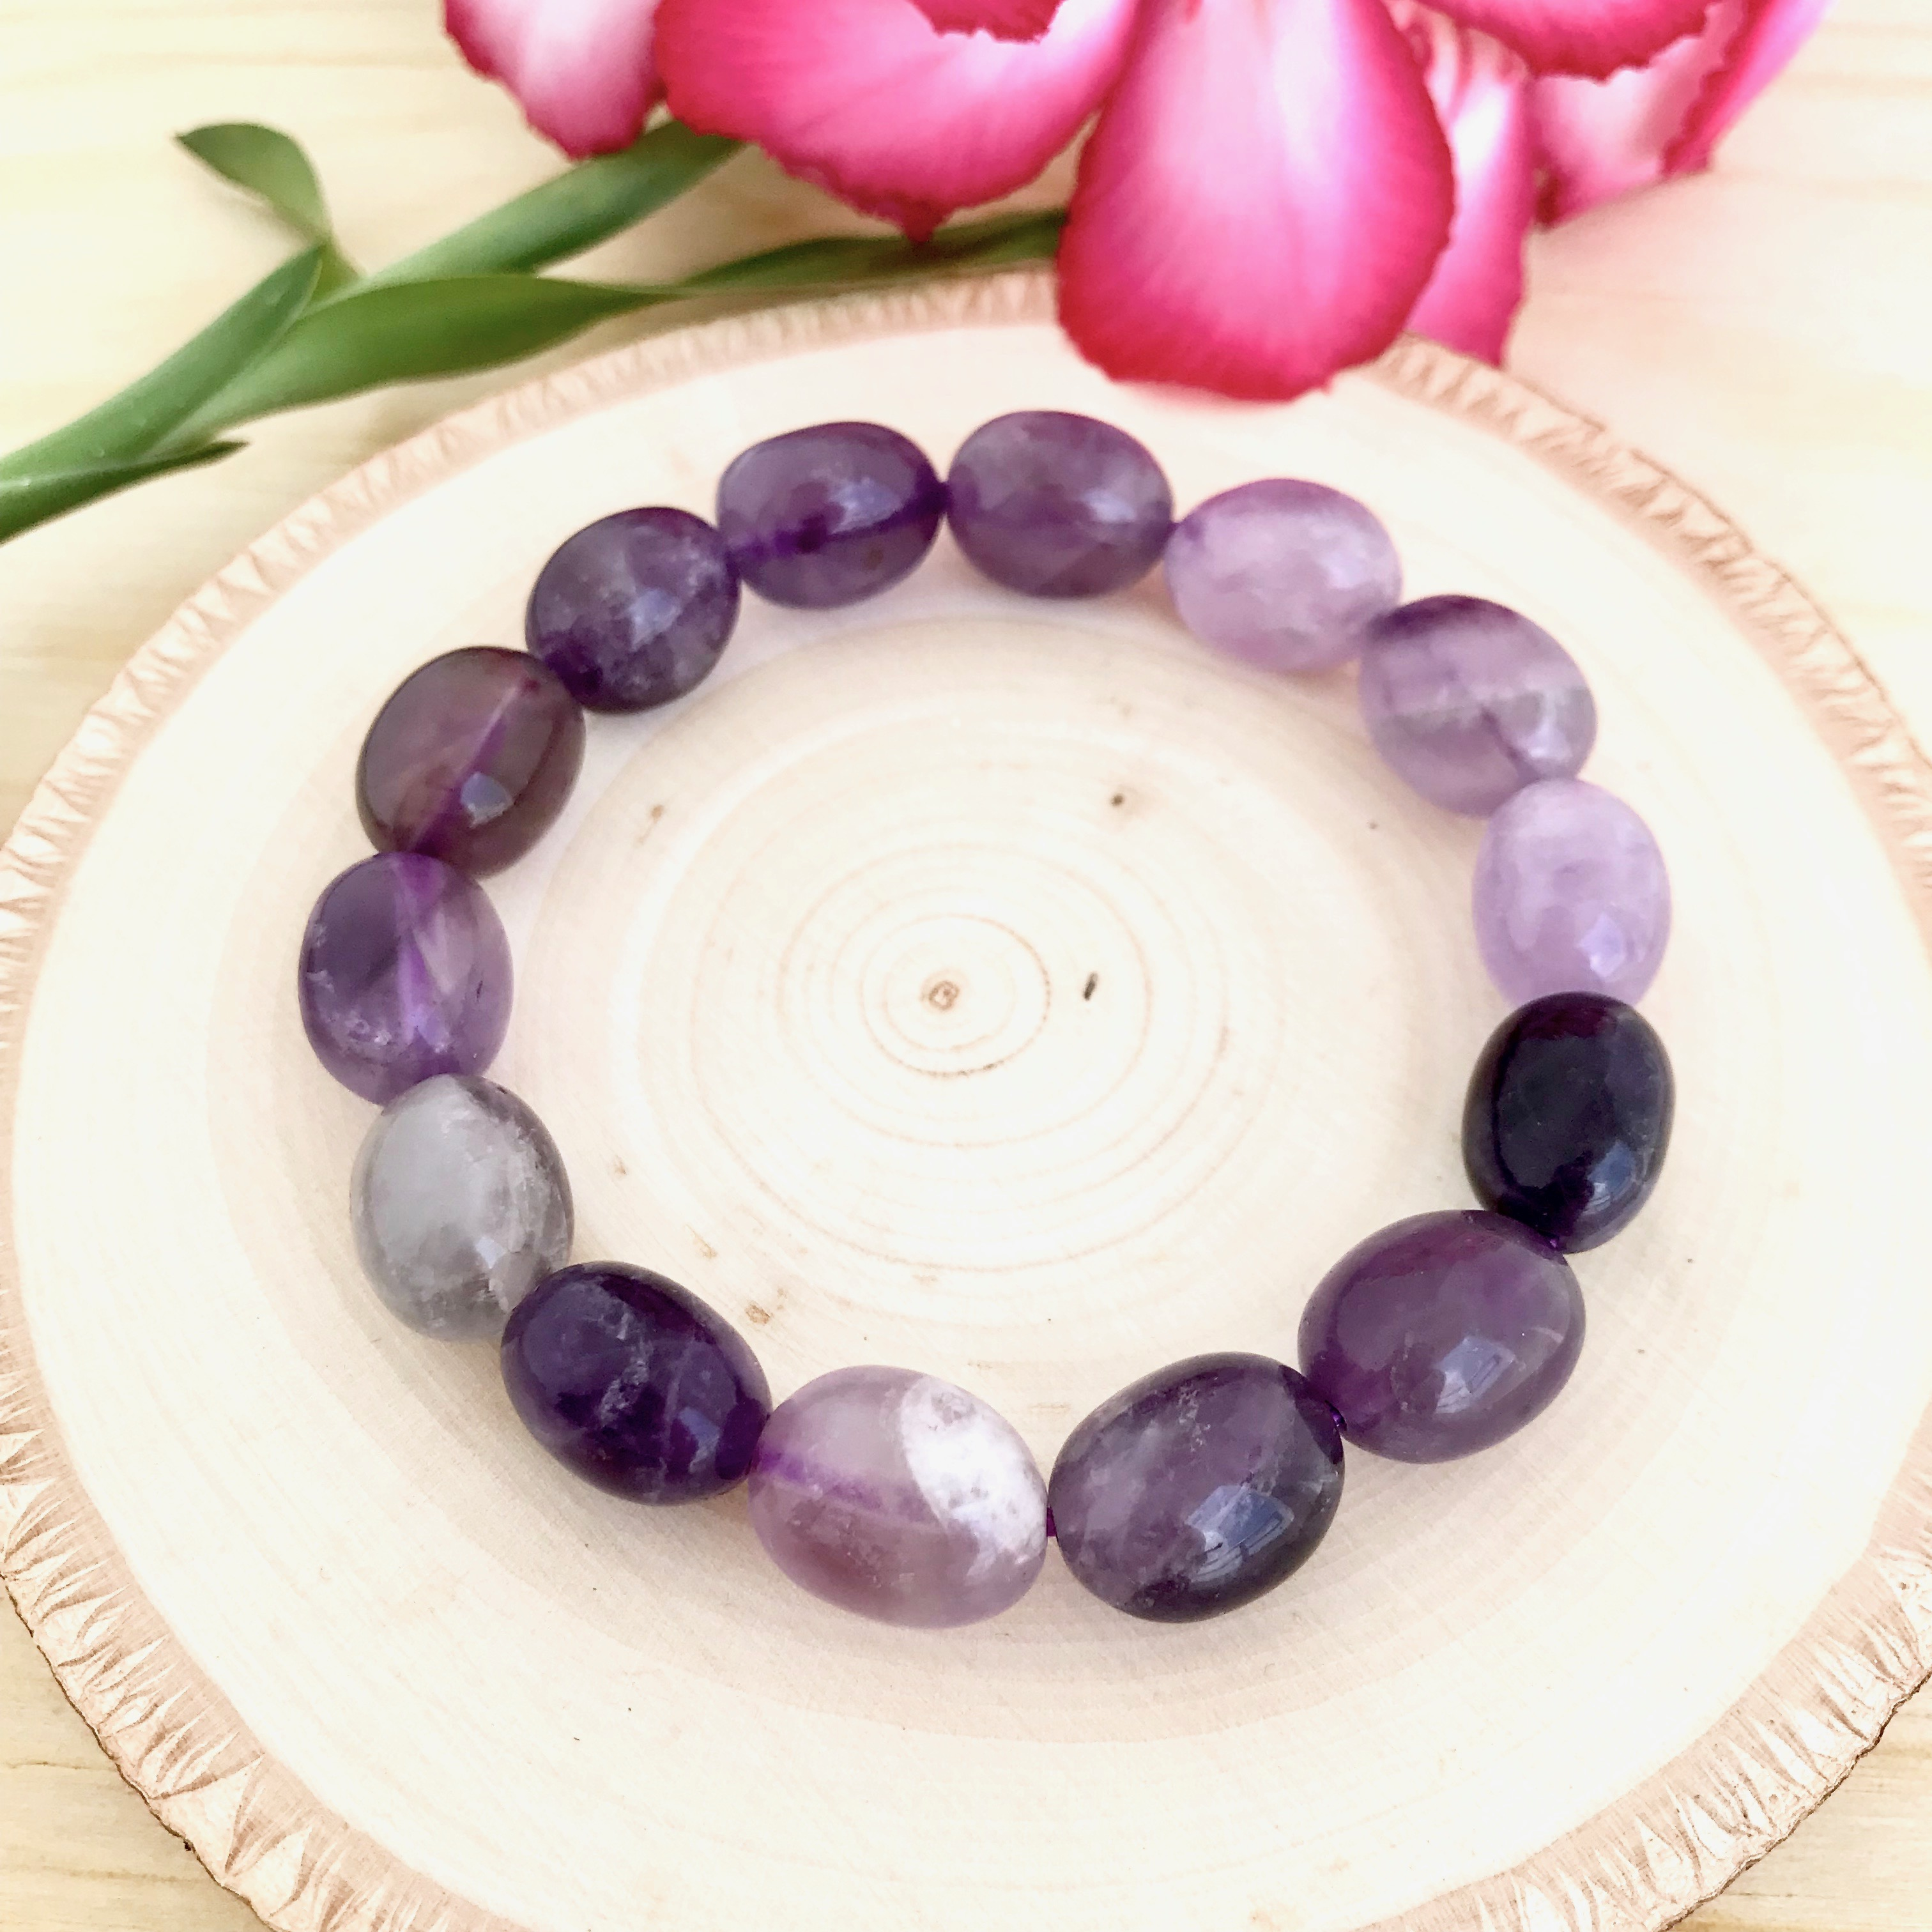 Protection, Tranquillity, Contentment - Amethyst Tumbled Gemstone Bracelet